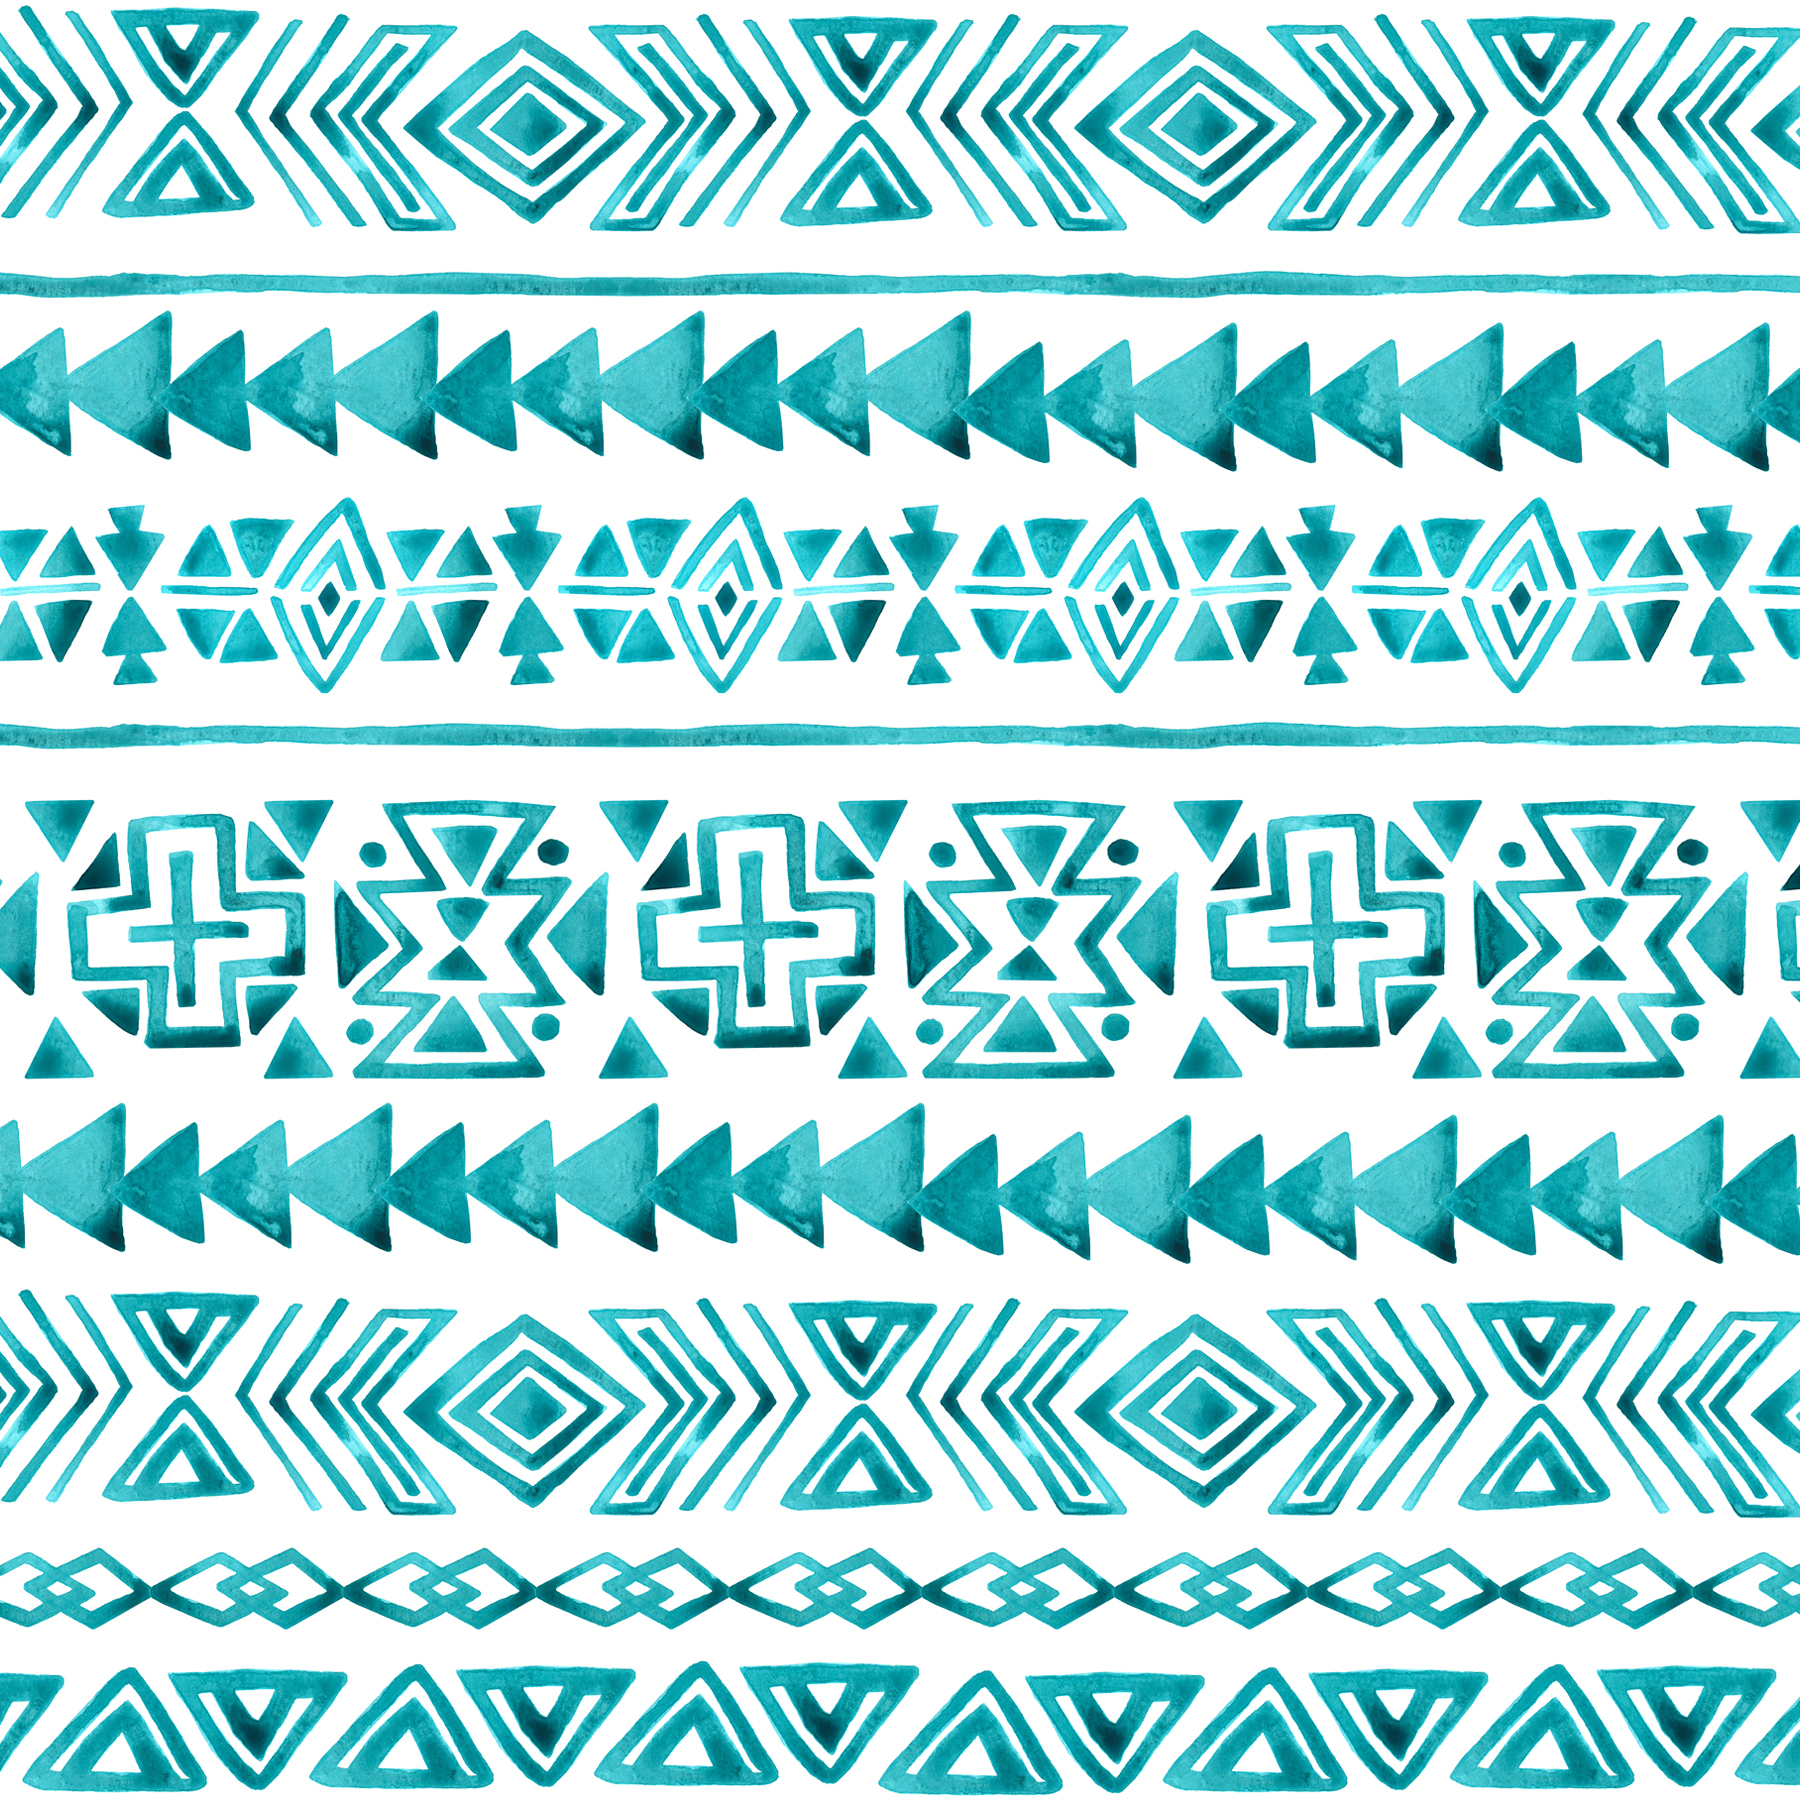 Instagram_Tribal_Pattern01.jpg